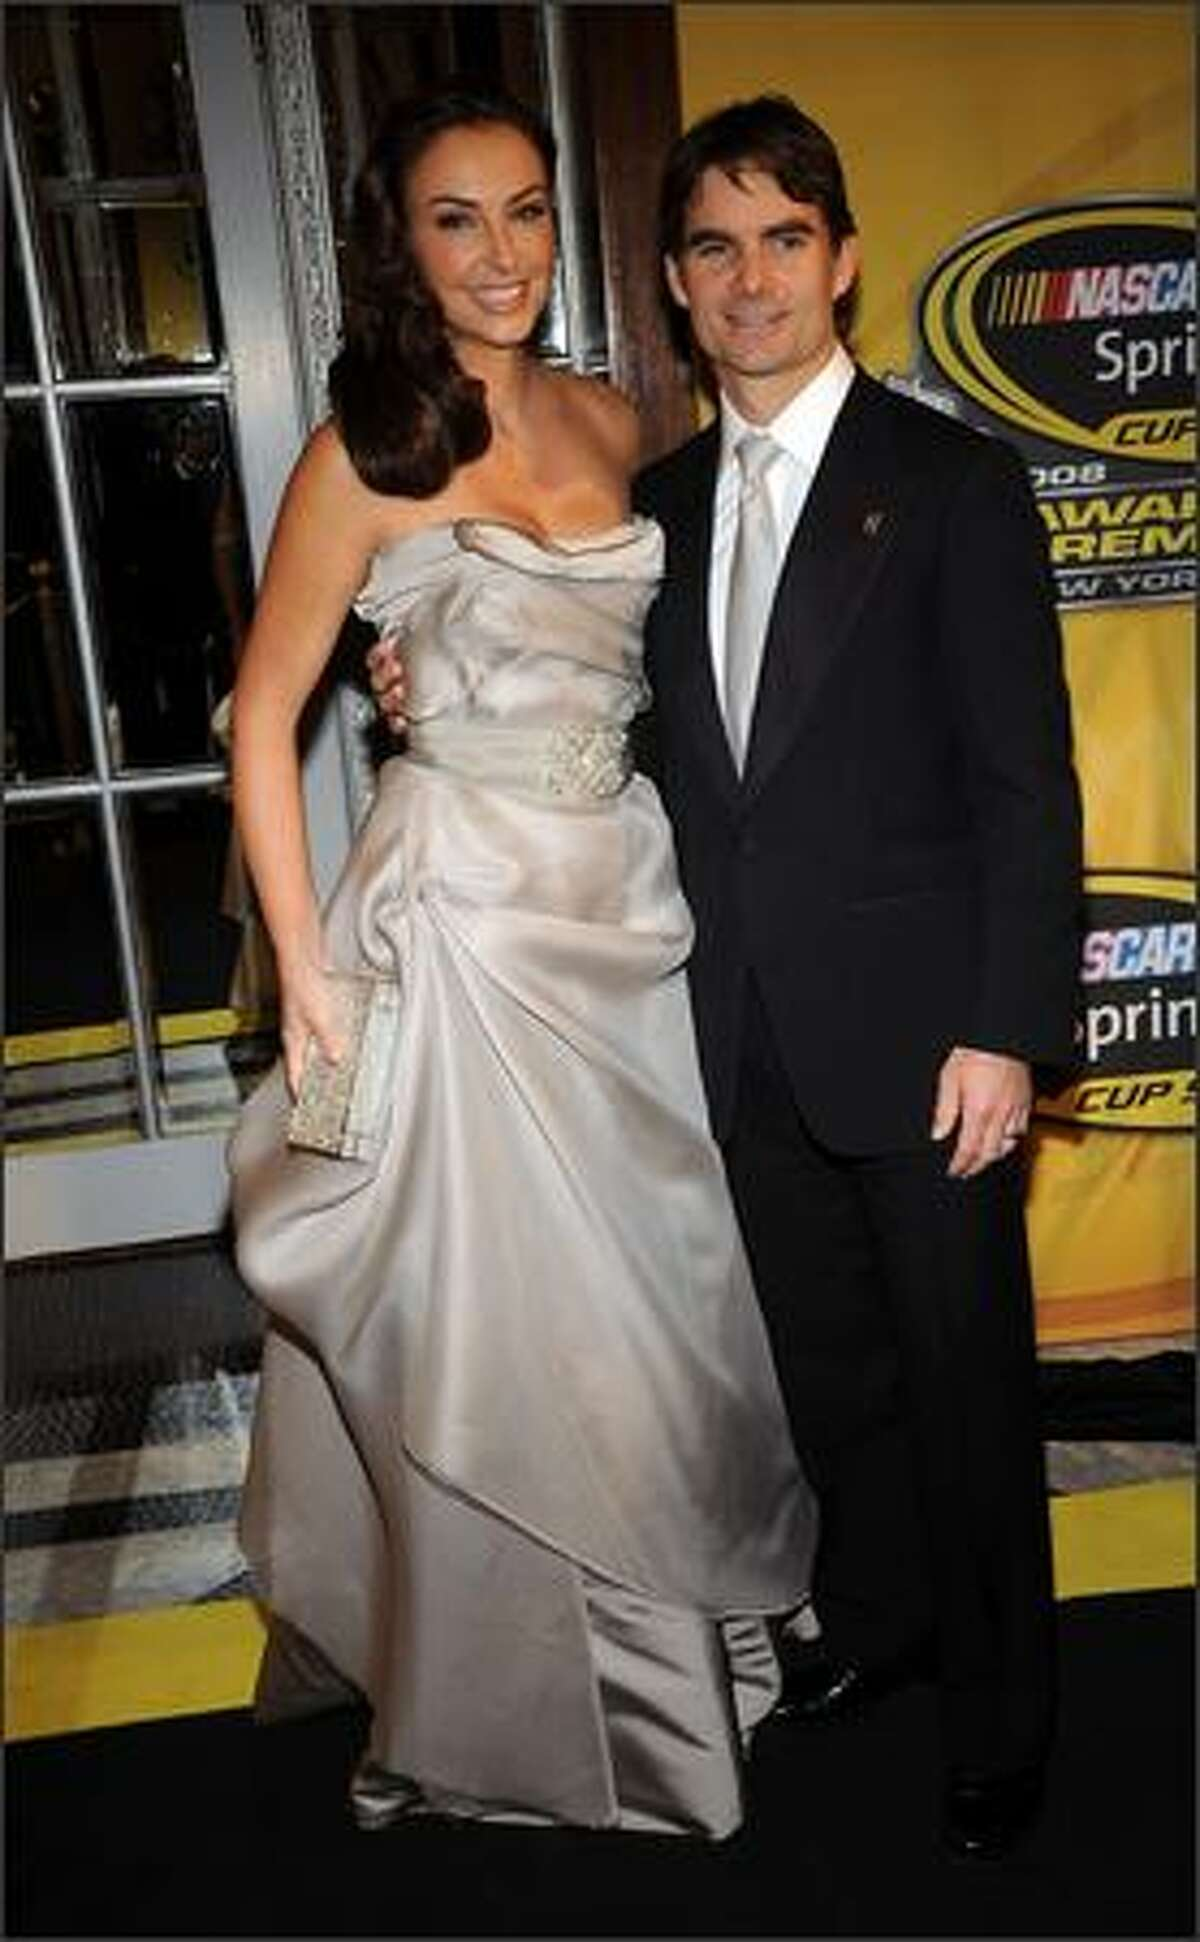 Jeff Gordon, driver of the #24 Dupont Chevrolet, and his wife Ingrid Vandebosch, arrive.